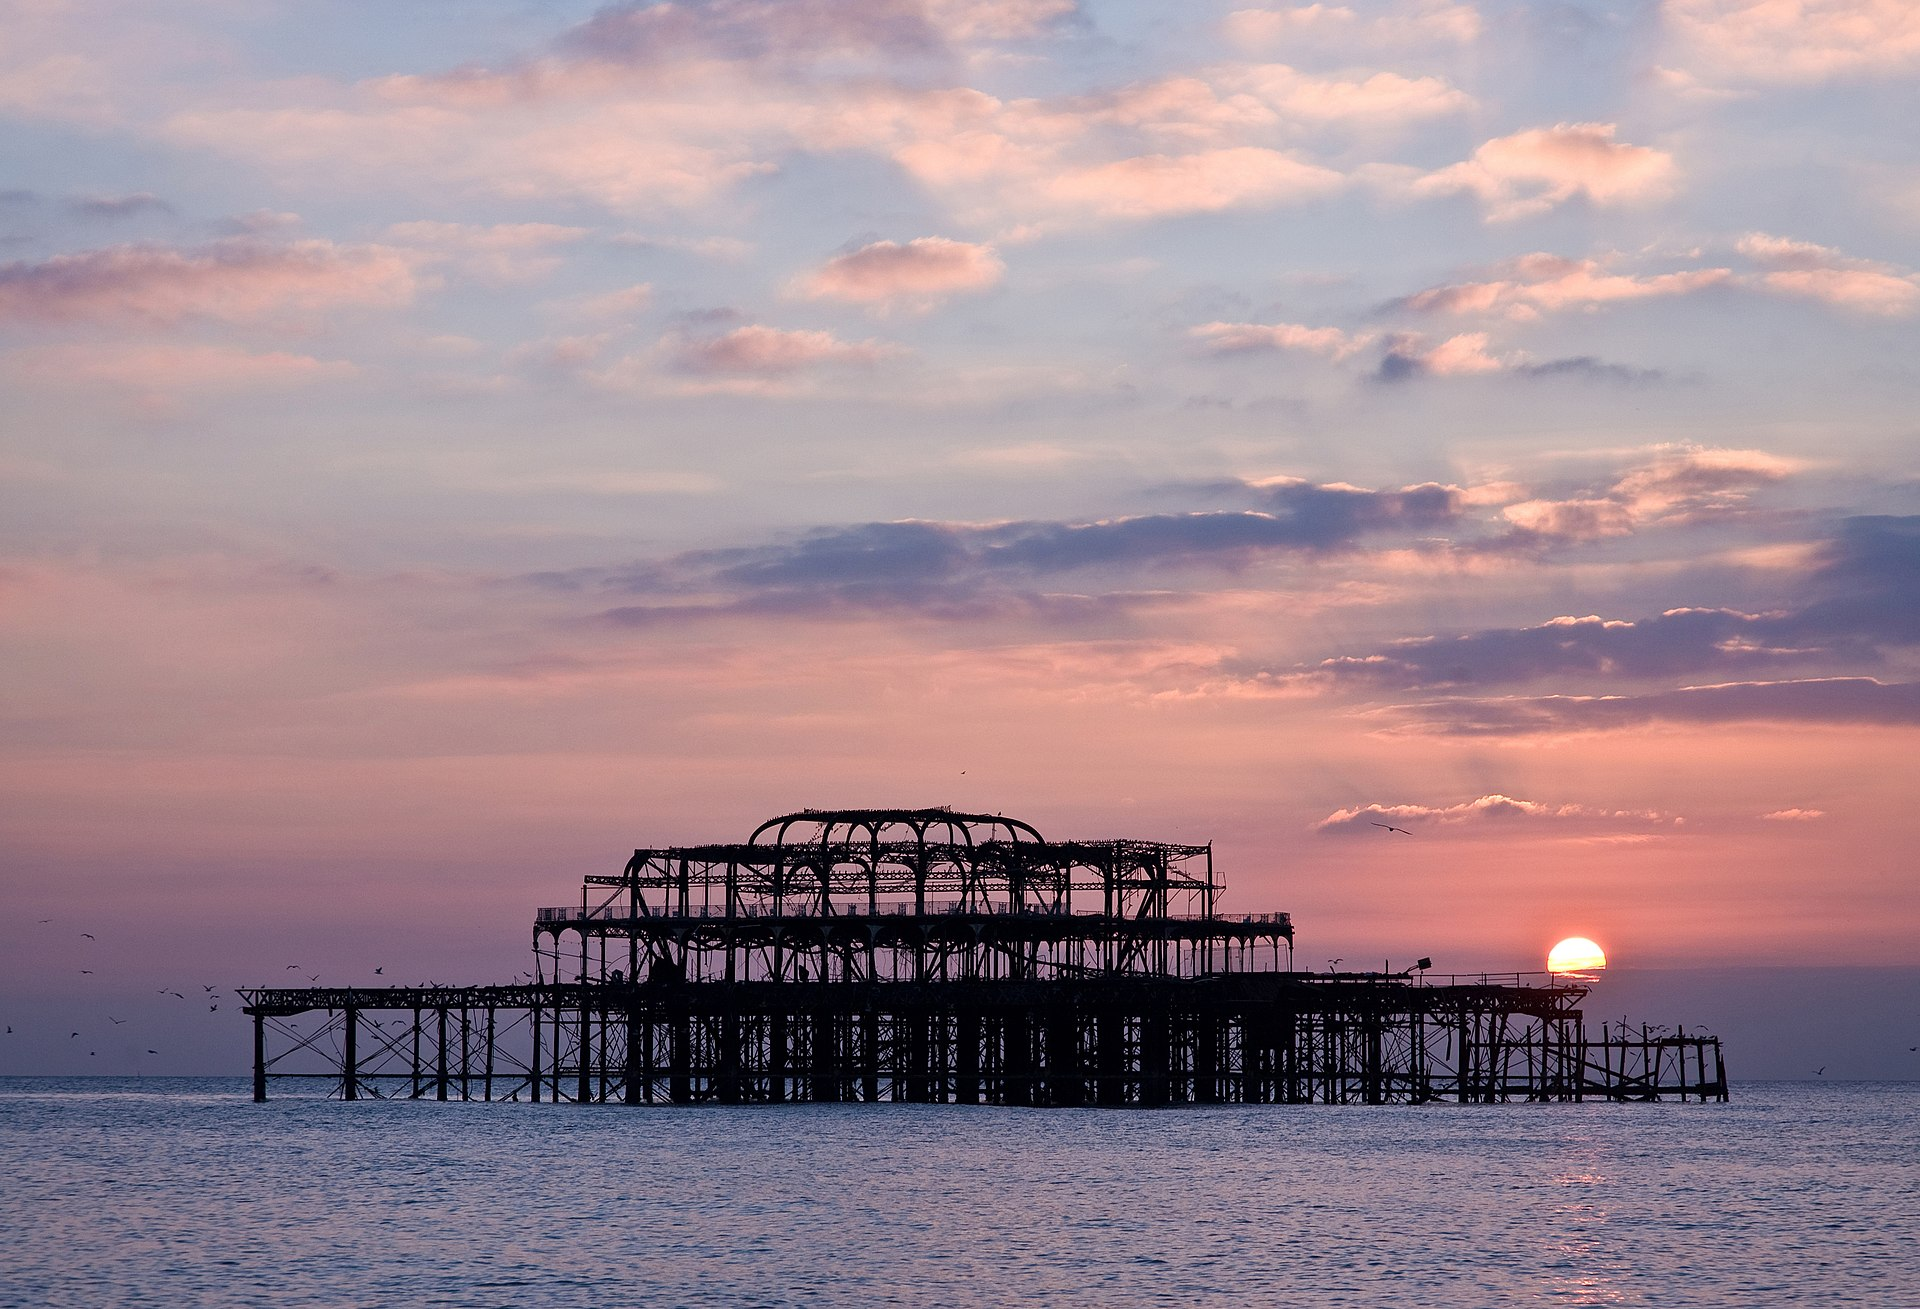 West pier wikipedia for The brighton